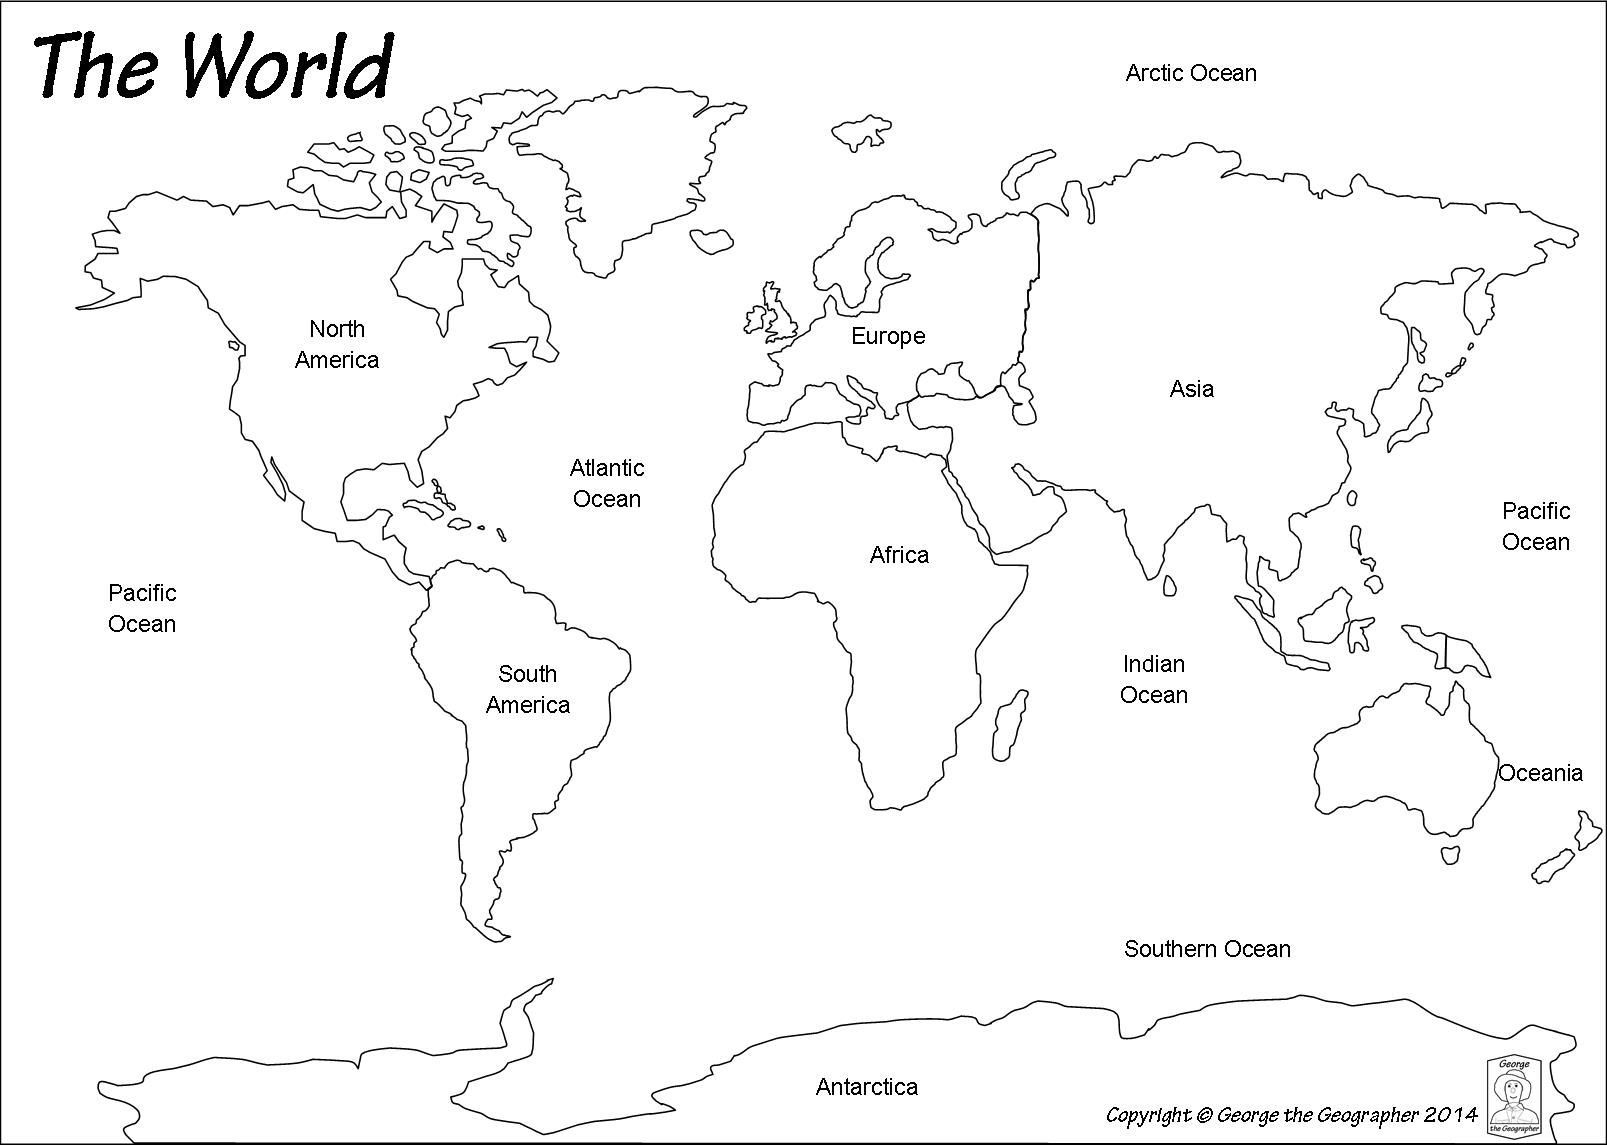 Blank World Map Worksheet Worldwide Maps Collection Free With | Free Printable World Map Worksheets